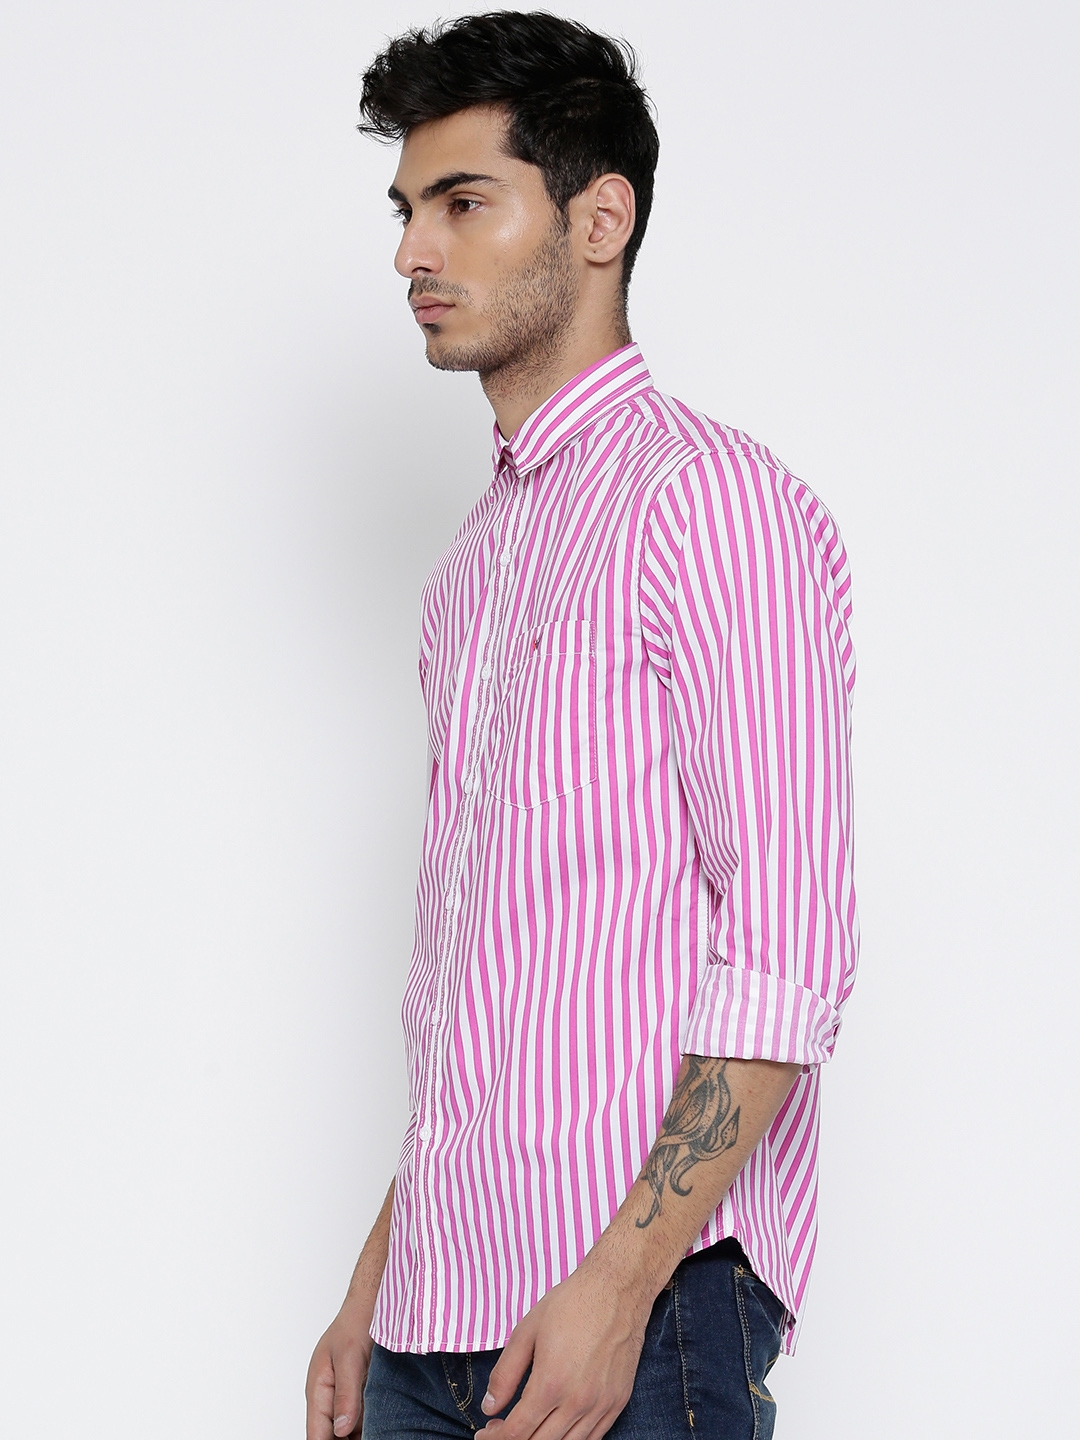 85fab04bb2 Buy Wills Lifestyle Men Pink & White Slim Striped Casual Shirt - Shirts for  Men 1650617 | Myntra